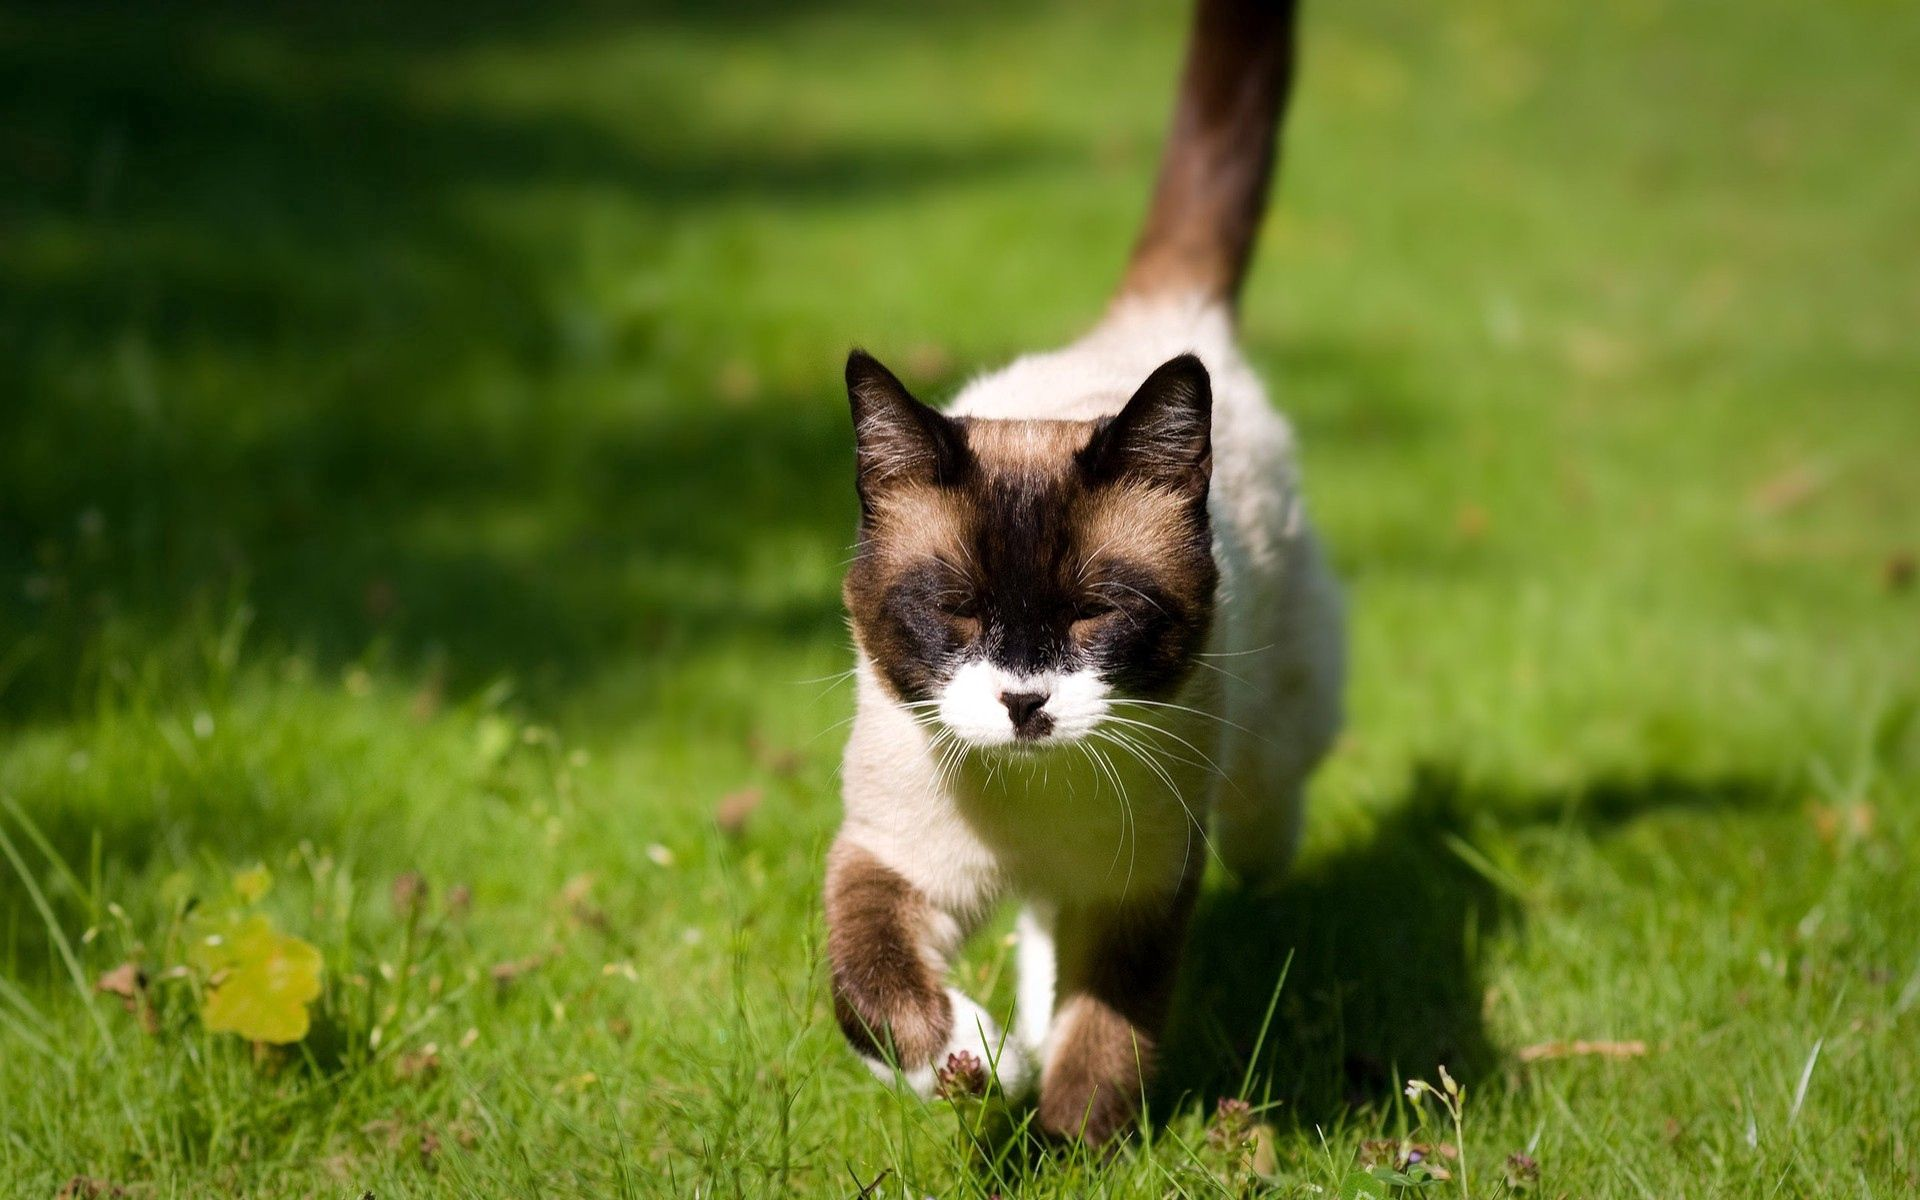 74443 download wallpaper Animals, Cat, Squint, Blink, Grass, Siamese, Stroll, Sunlight screensavers and pictures for free